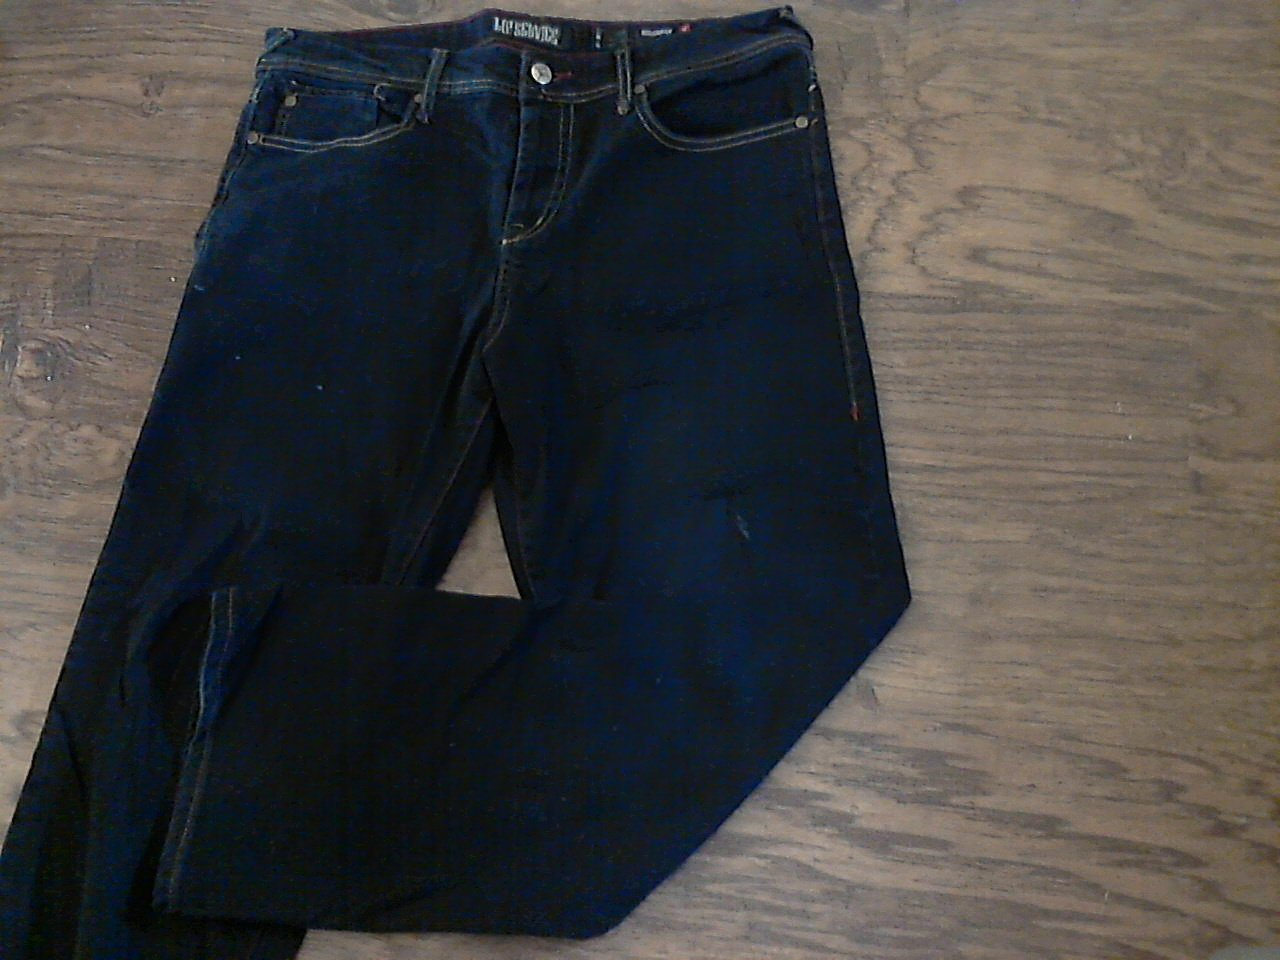 Rockaway man's black denim pant size 34/30